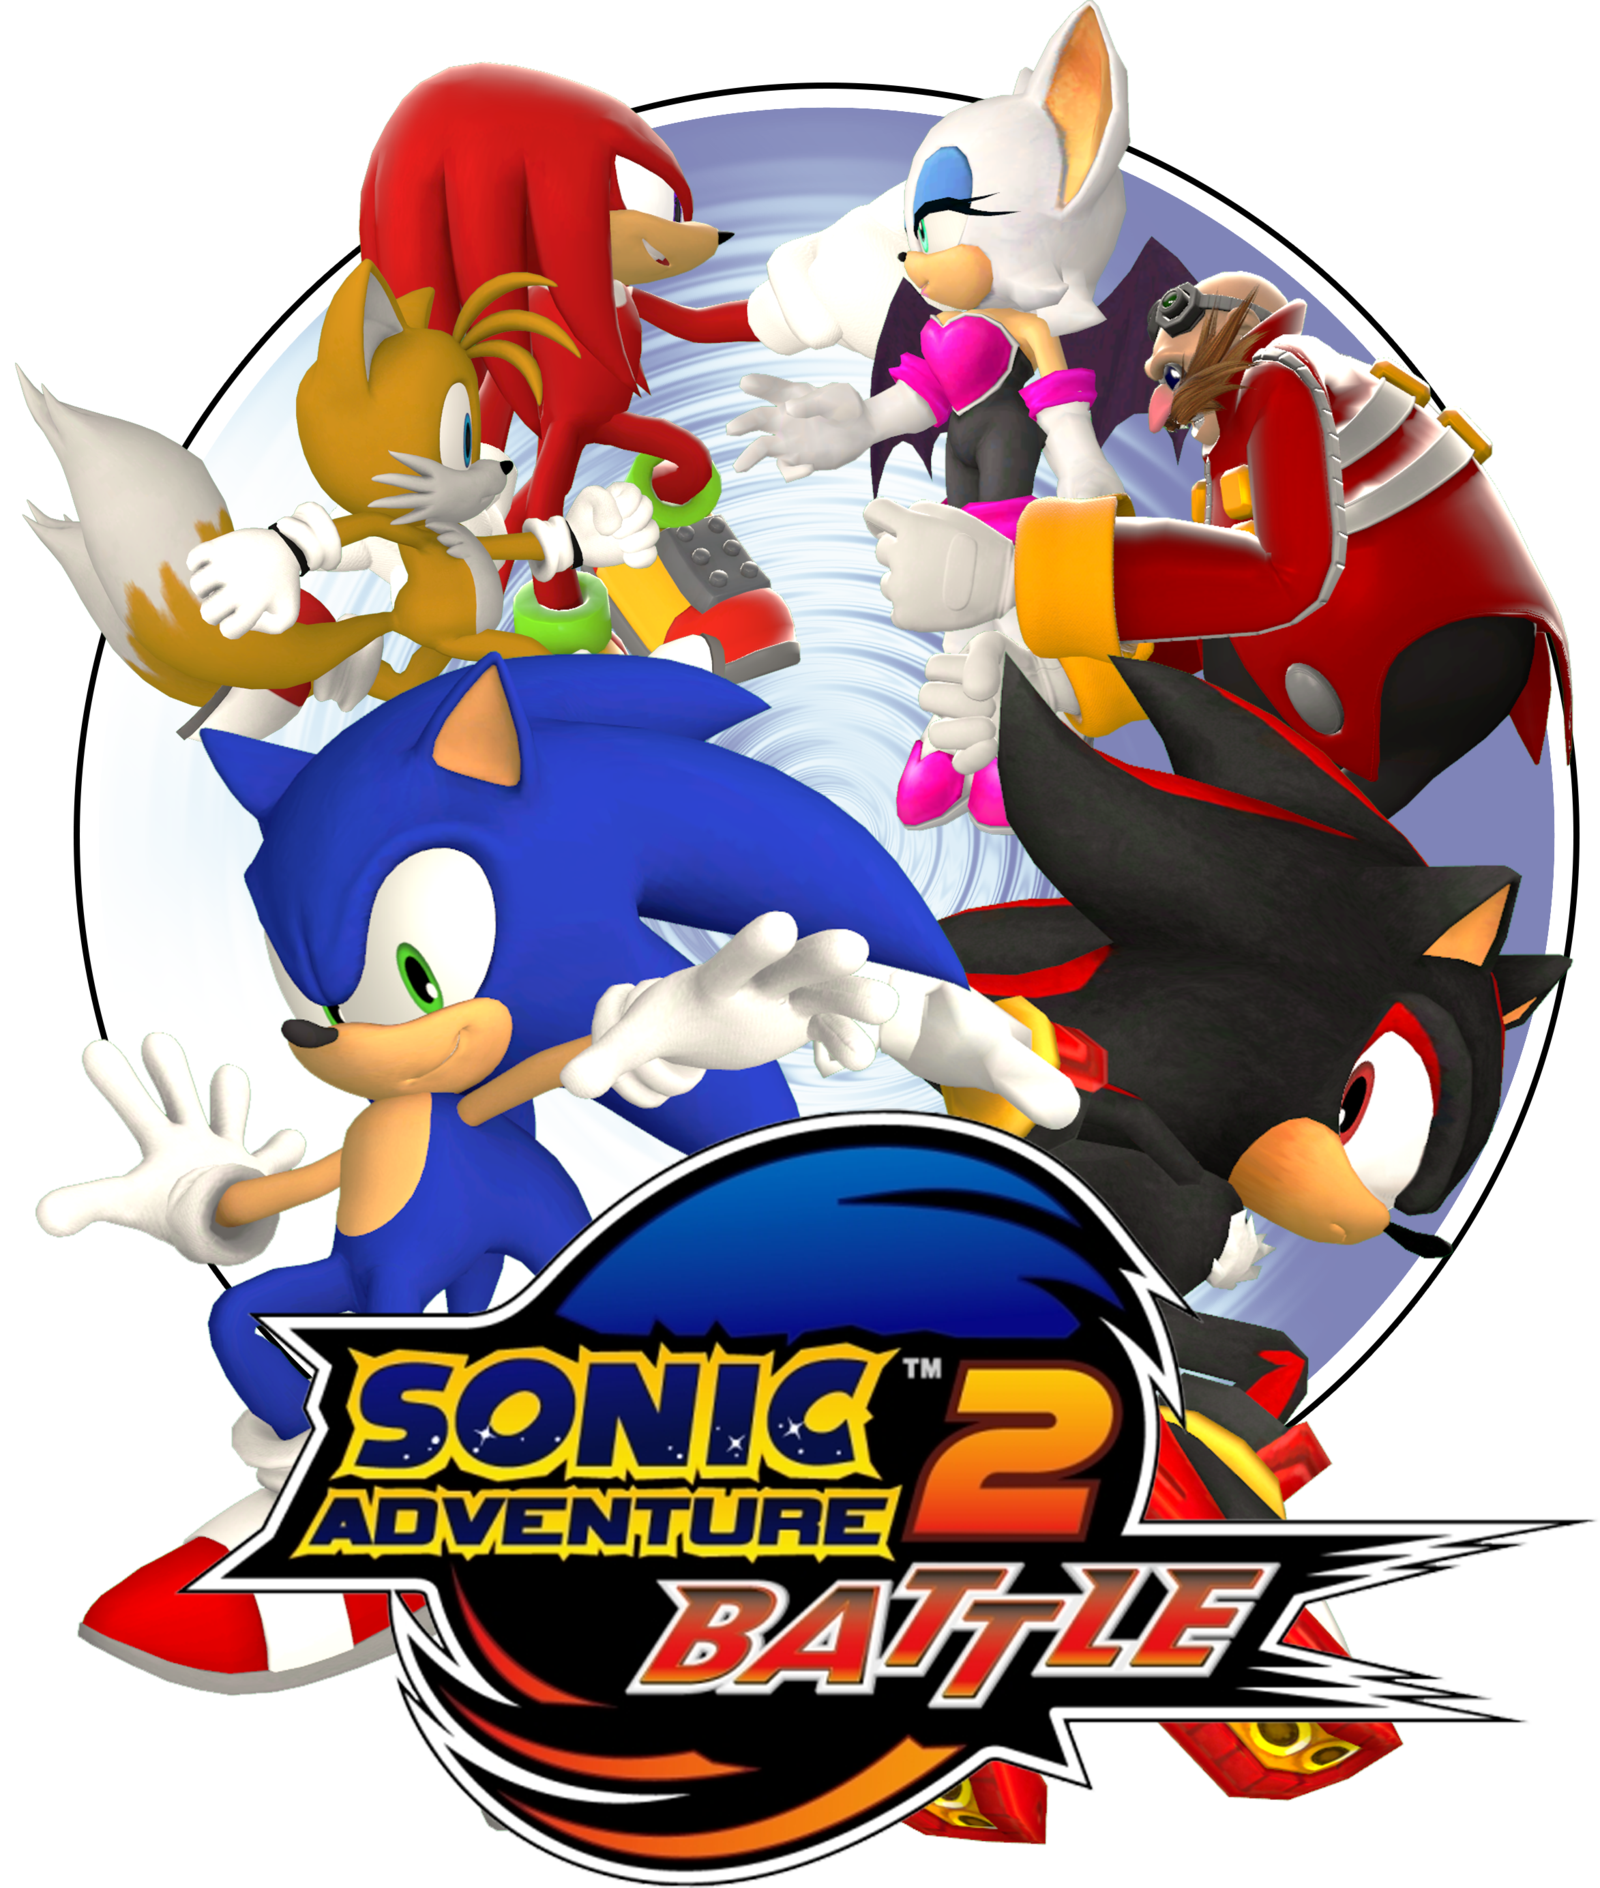 Sonic Adventure 2 Battle Wallpaper Wallpapersafari